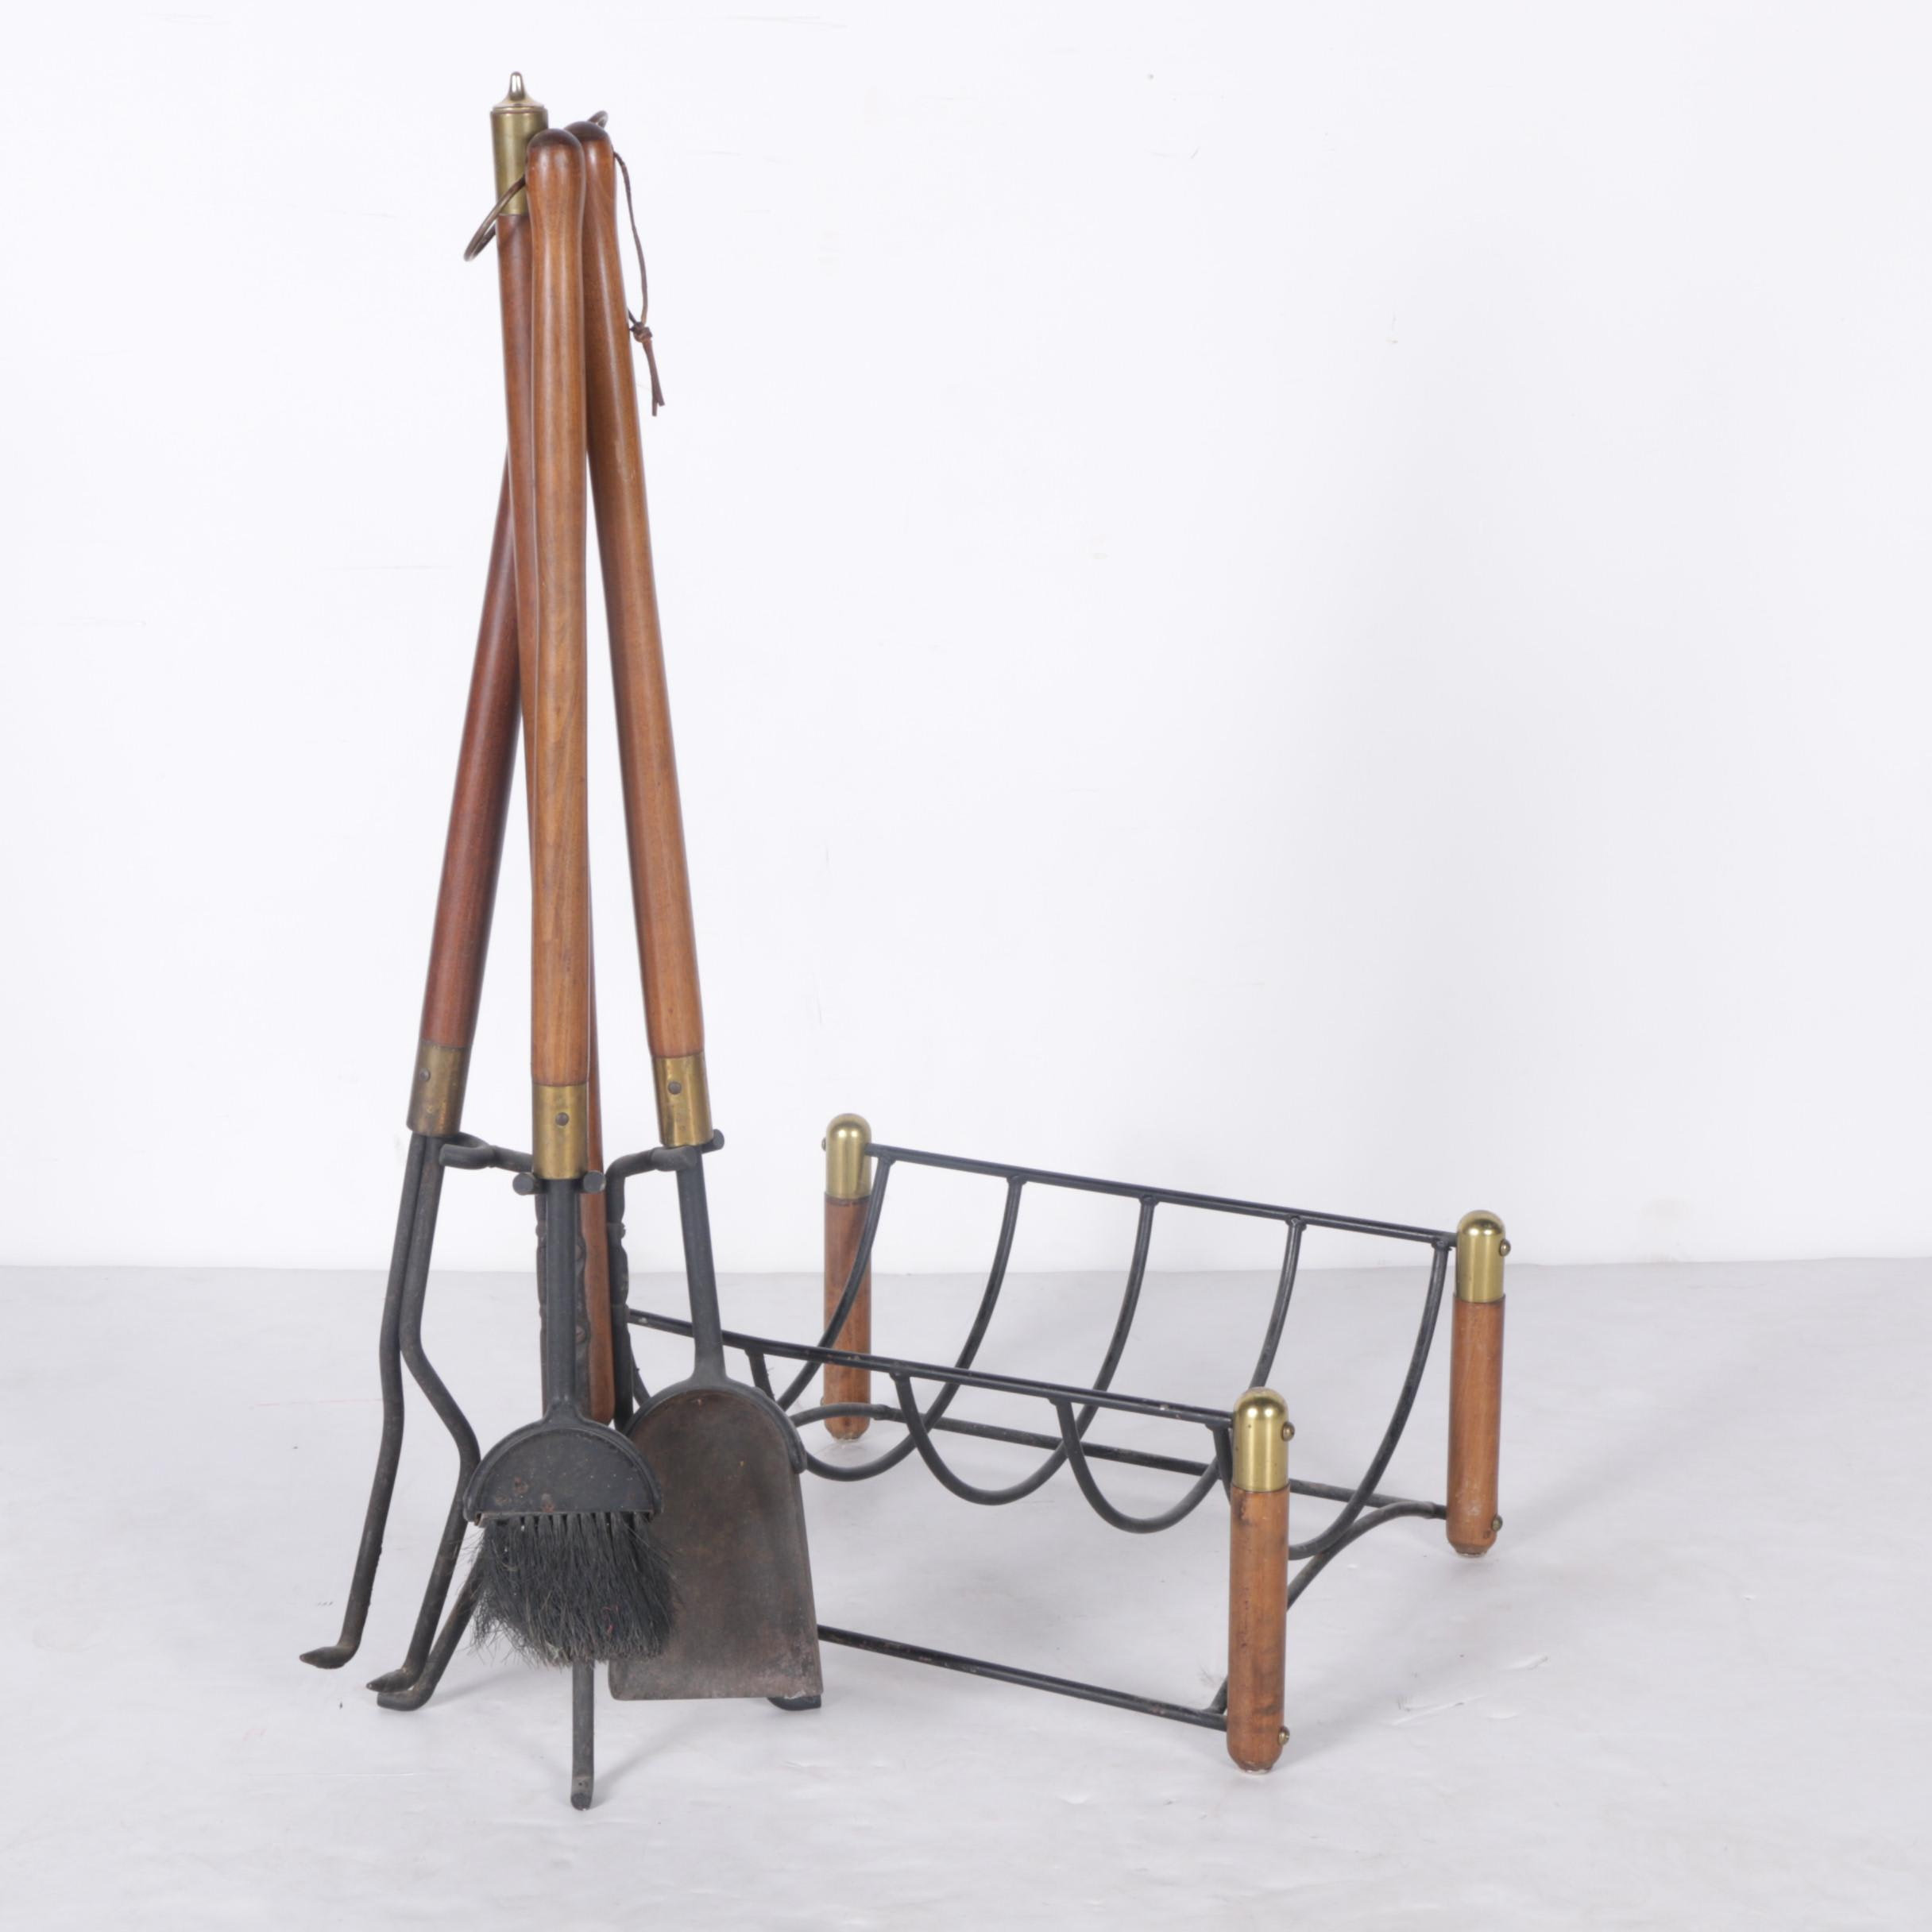 Wood and Brass Handled Fireplace Tools with Matching Rack